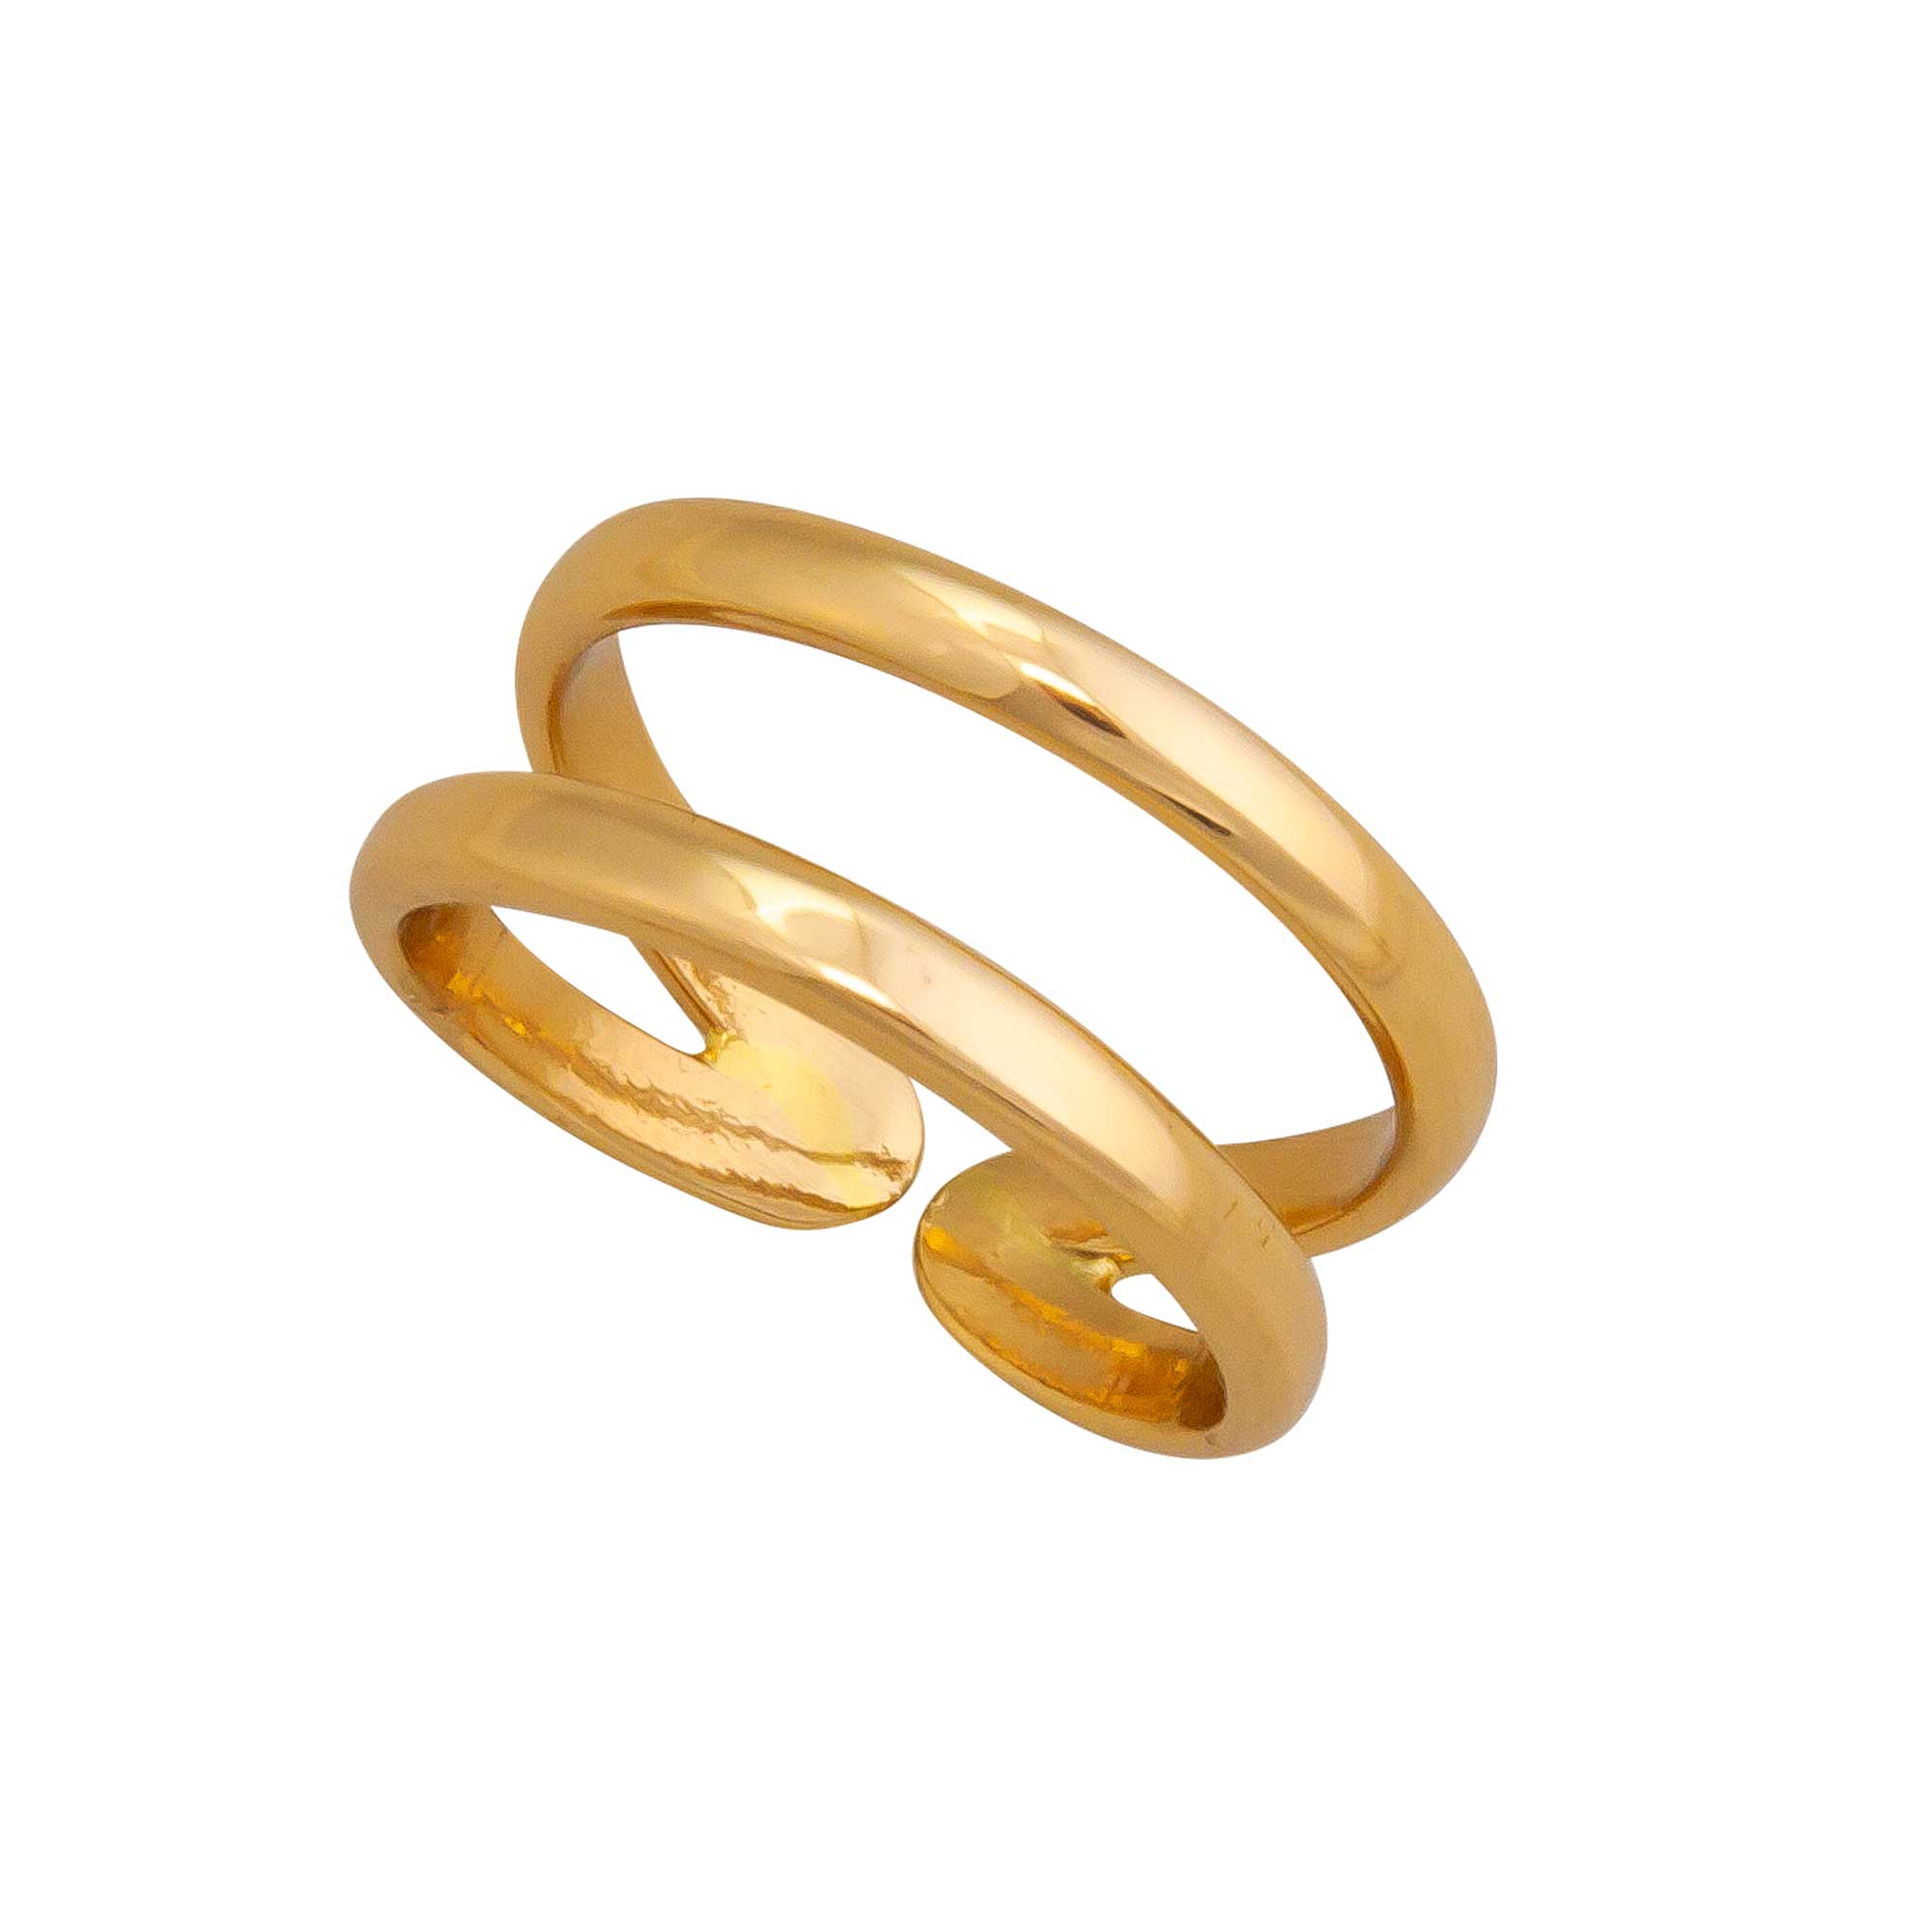 Alchemia Double Band Adjustable Ring | Charles Albert Jewelry